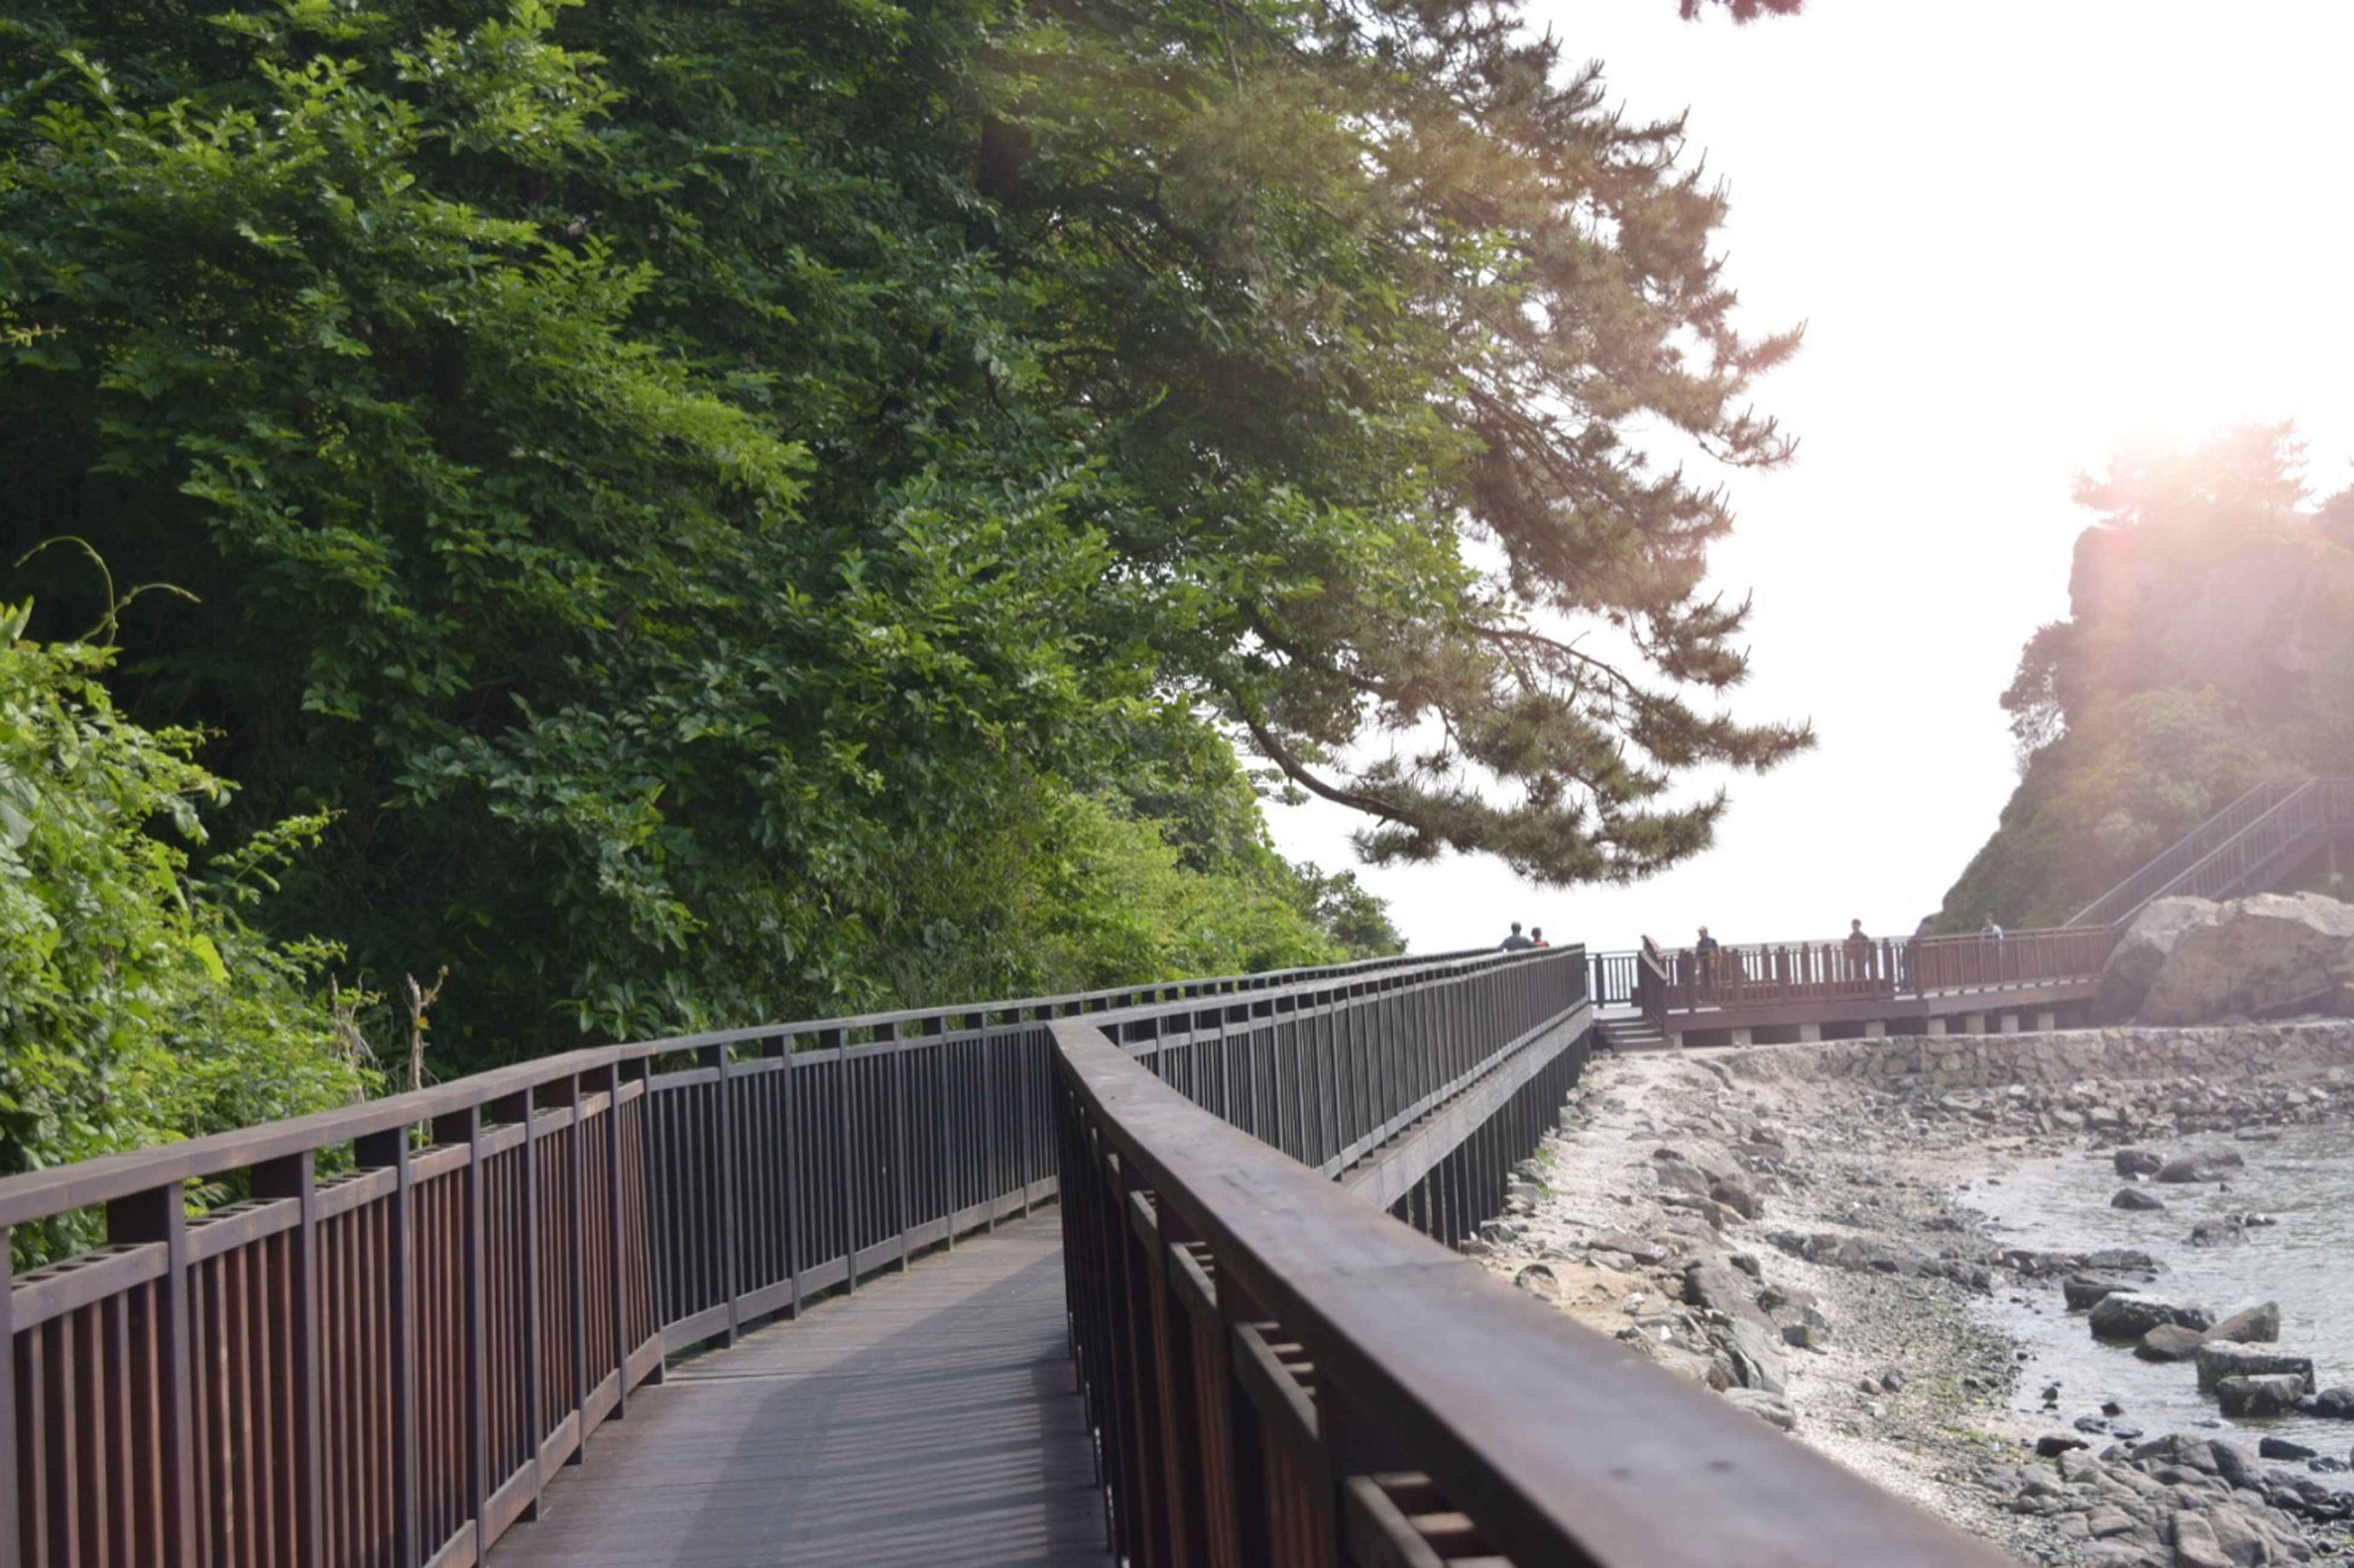 railing, tree, bridge - man made structure, day, footbridge, outdoors, built structure, nature, water, no people, architecture, beauty in nature, sky